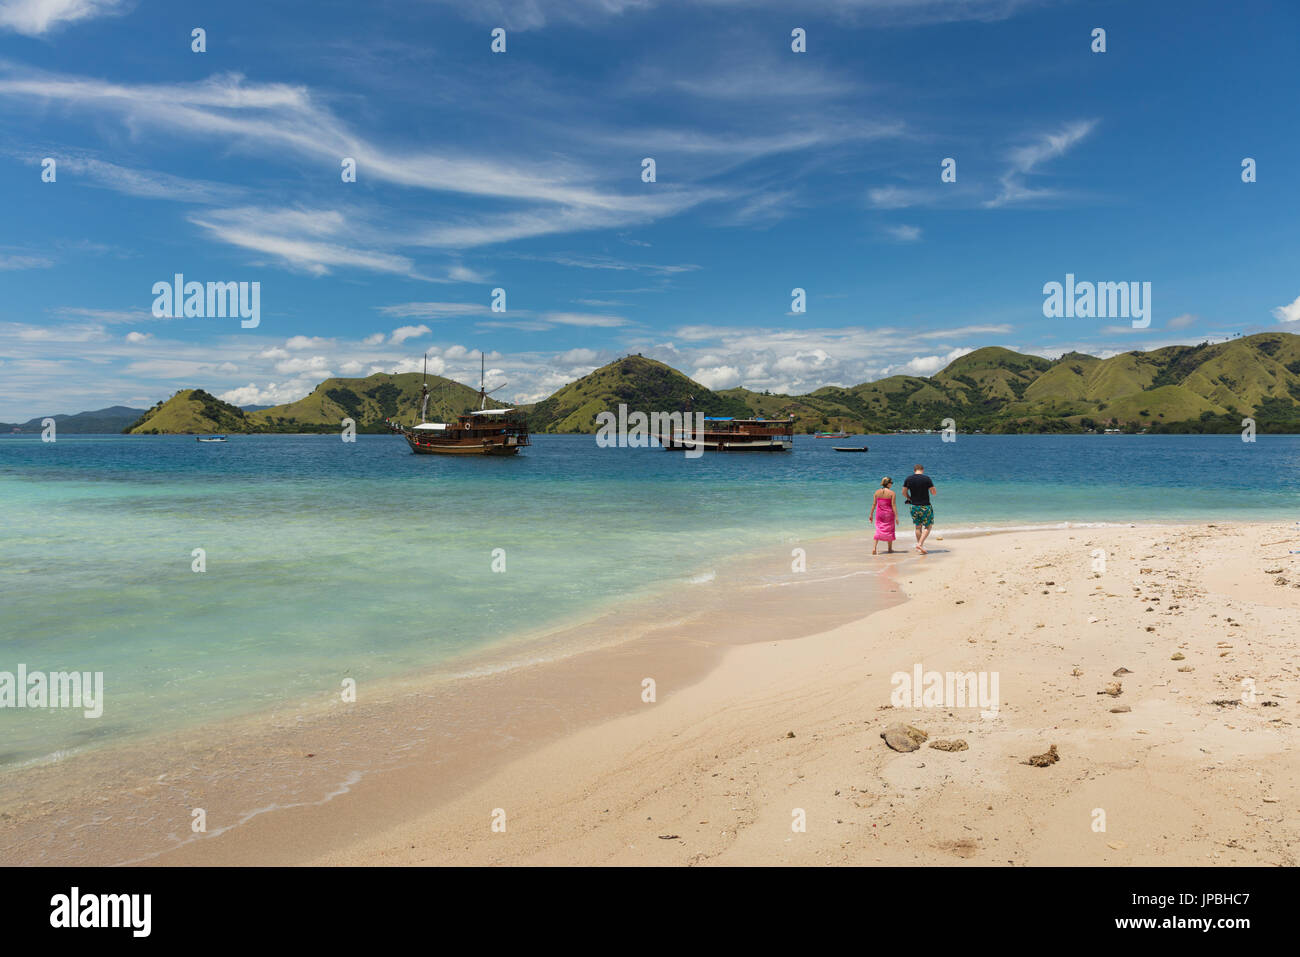 Couple walking along a beach in the Flores sea, Indonesia, Komodo, dream, holiday - Stock Image